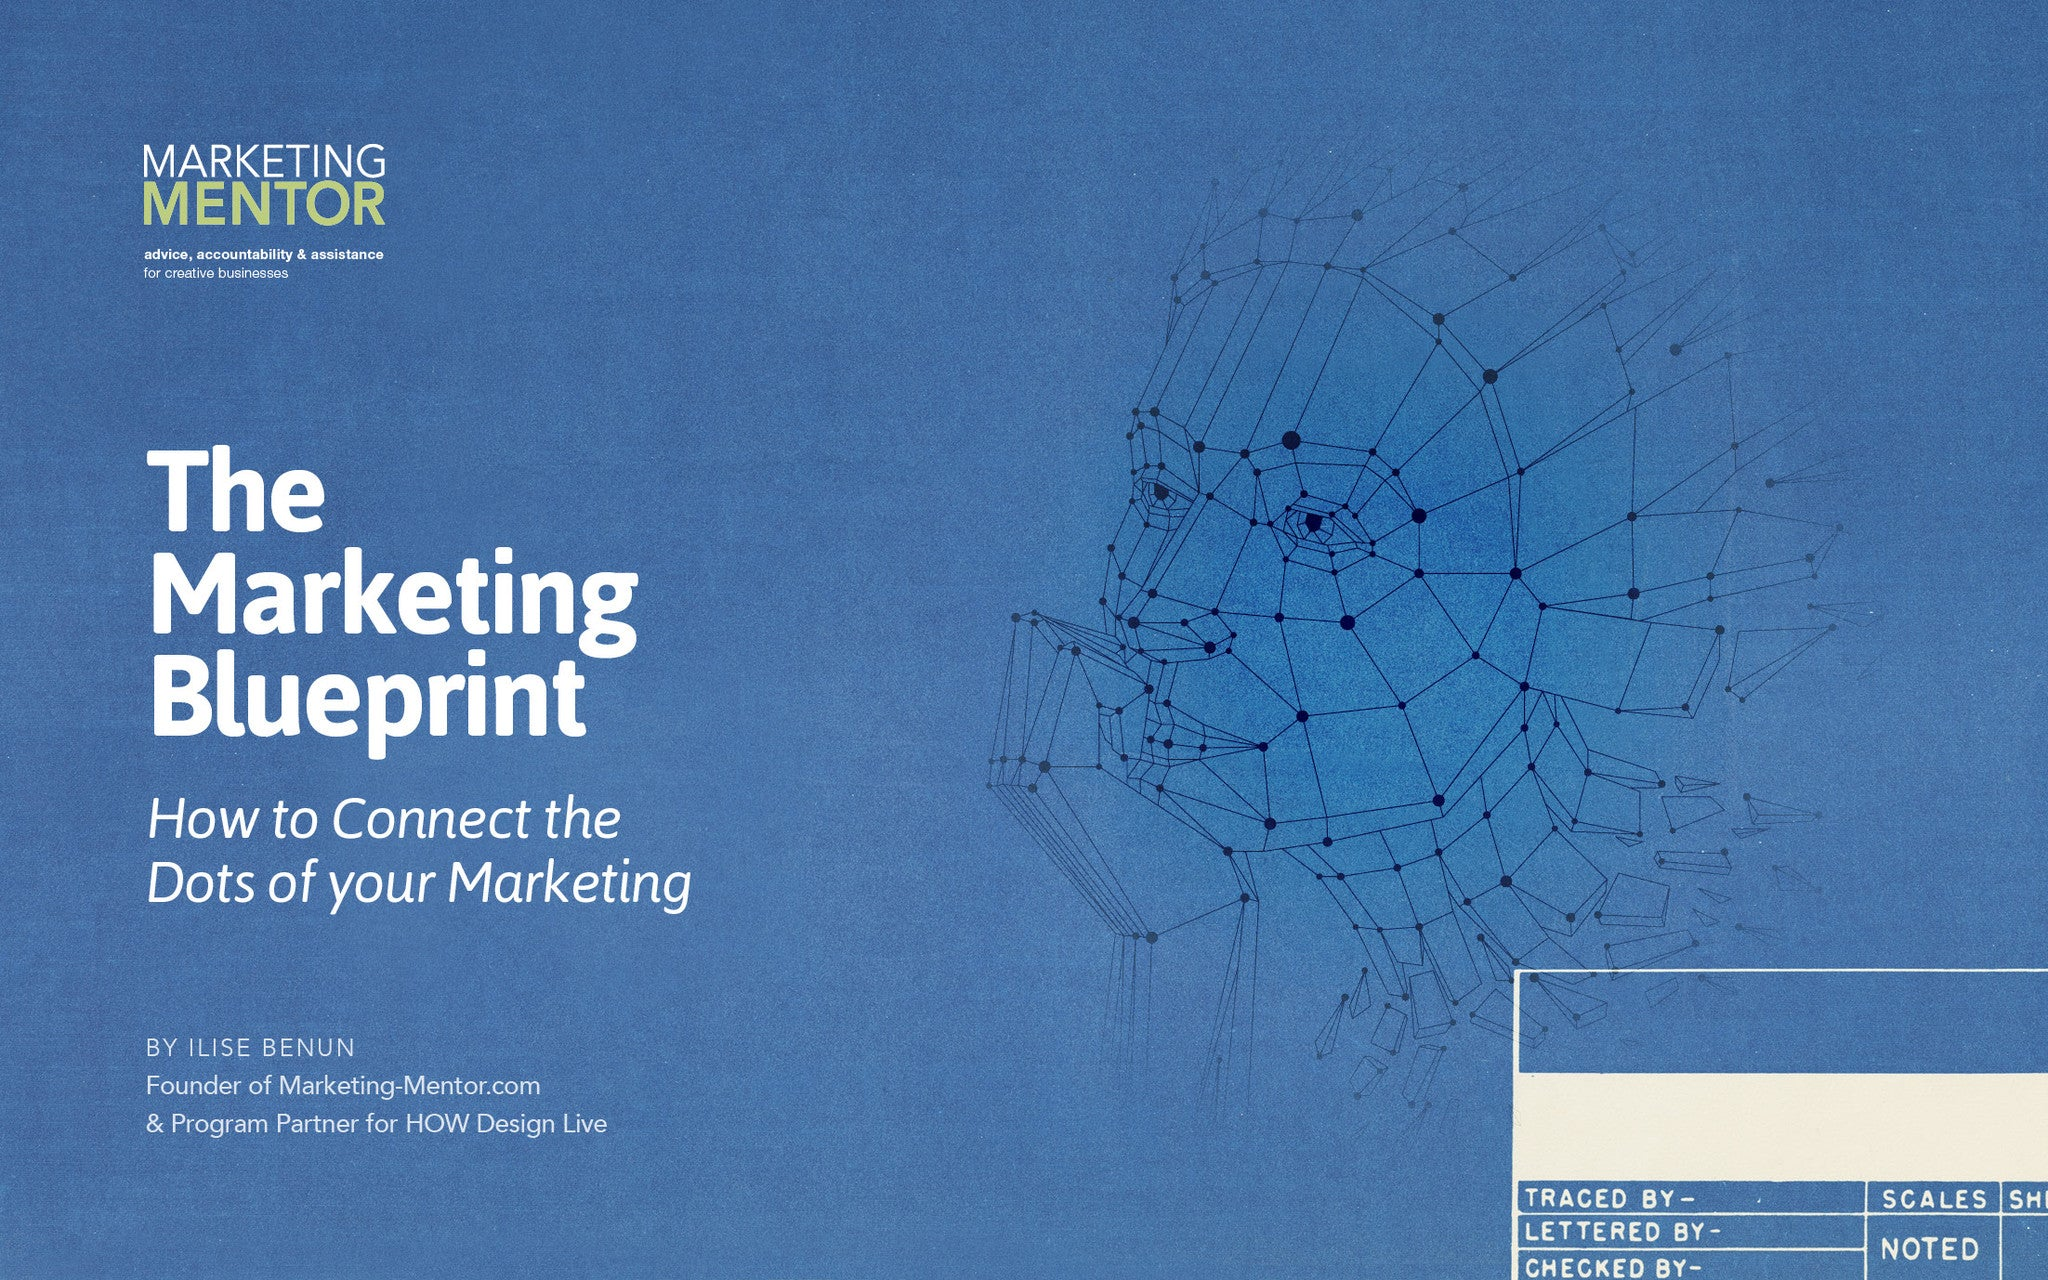 The marketing blueprint how to connect the dots of your marketing the marketing blueprint how to connect the dots of your marketing malvernweather Images